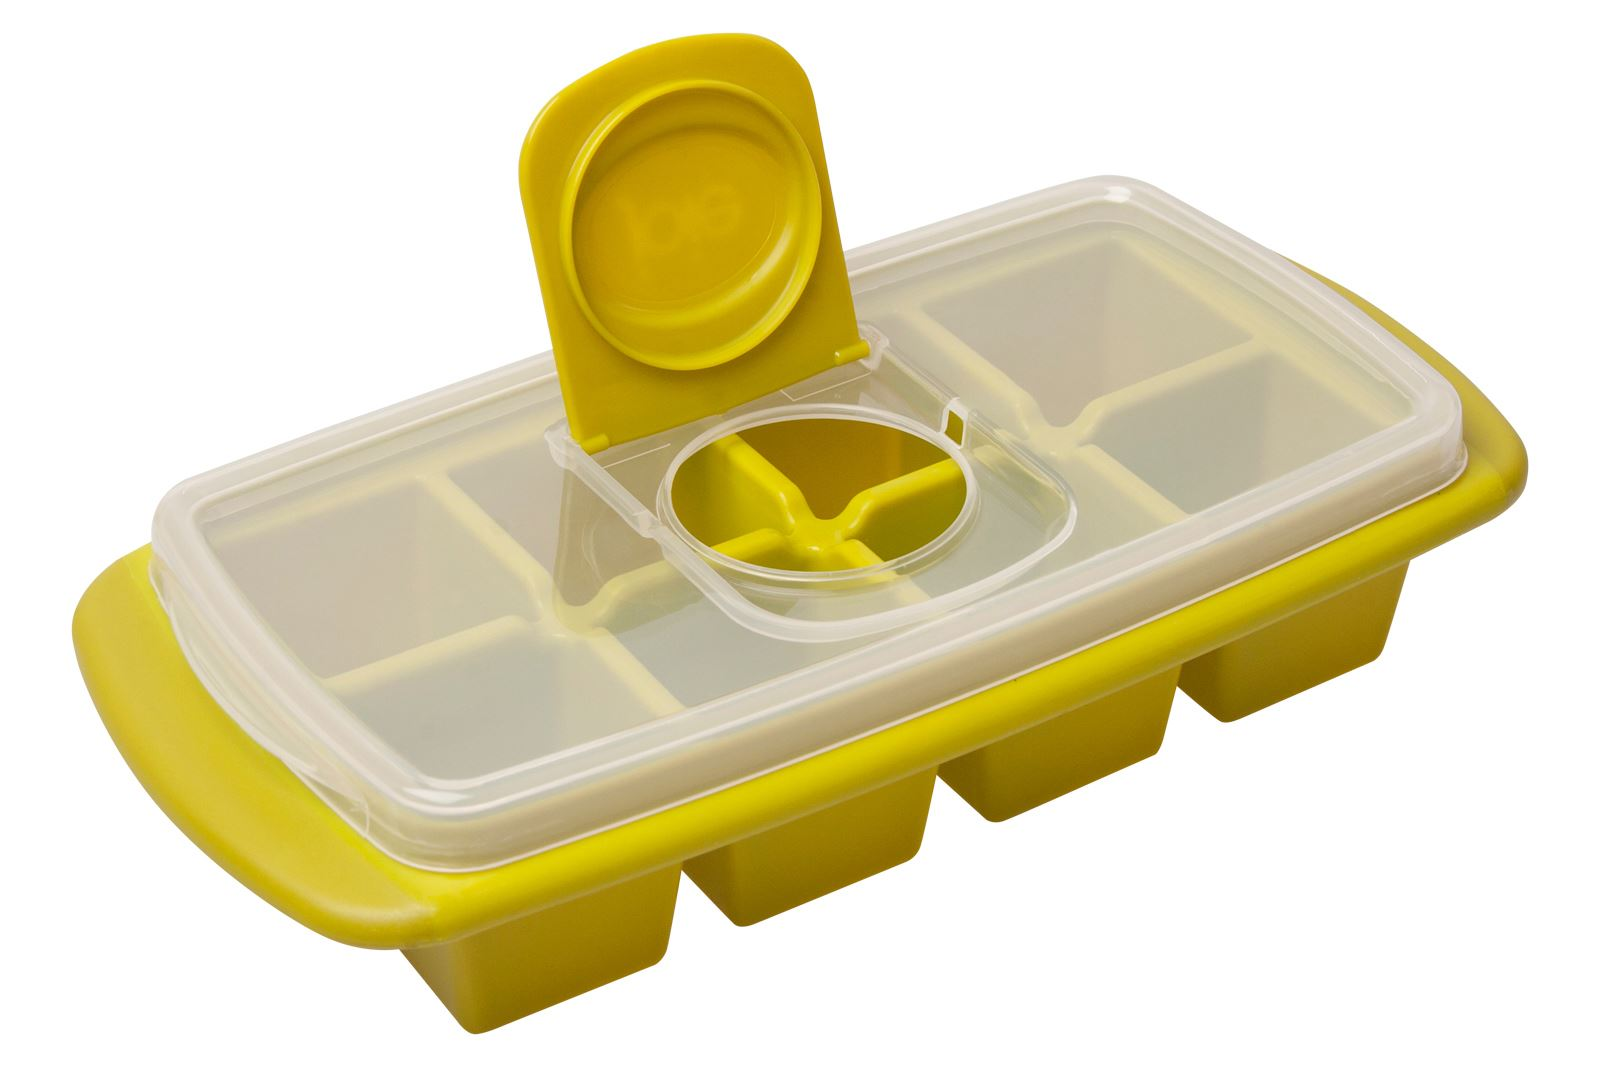 Ice cube trays with lids